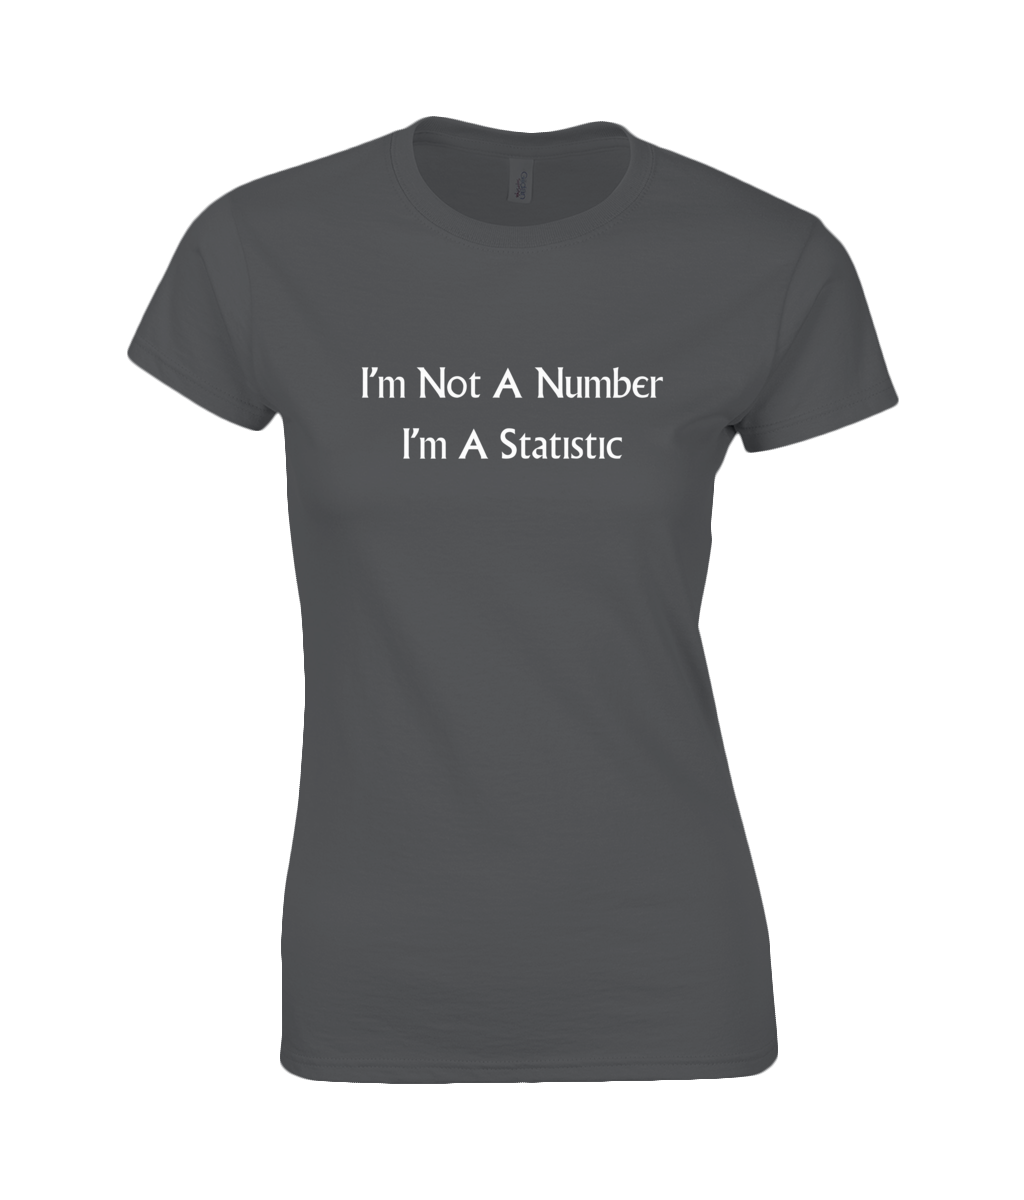 I'm Not A Number I'm A Statistic - women's t-shirt